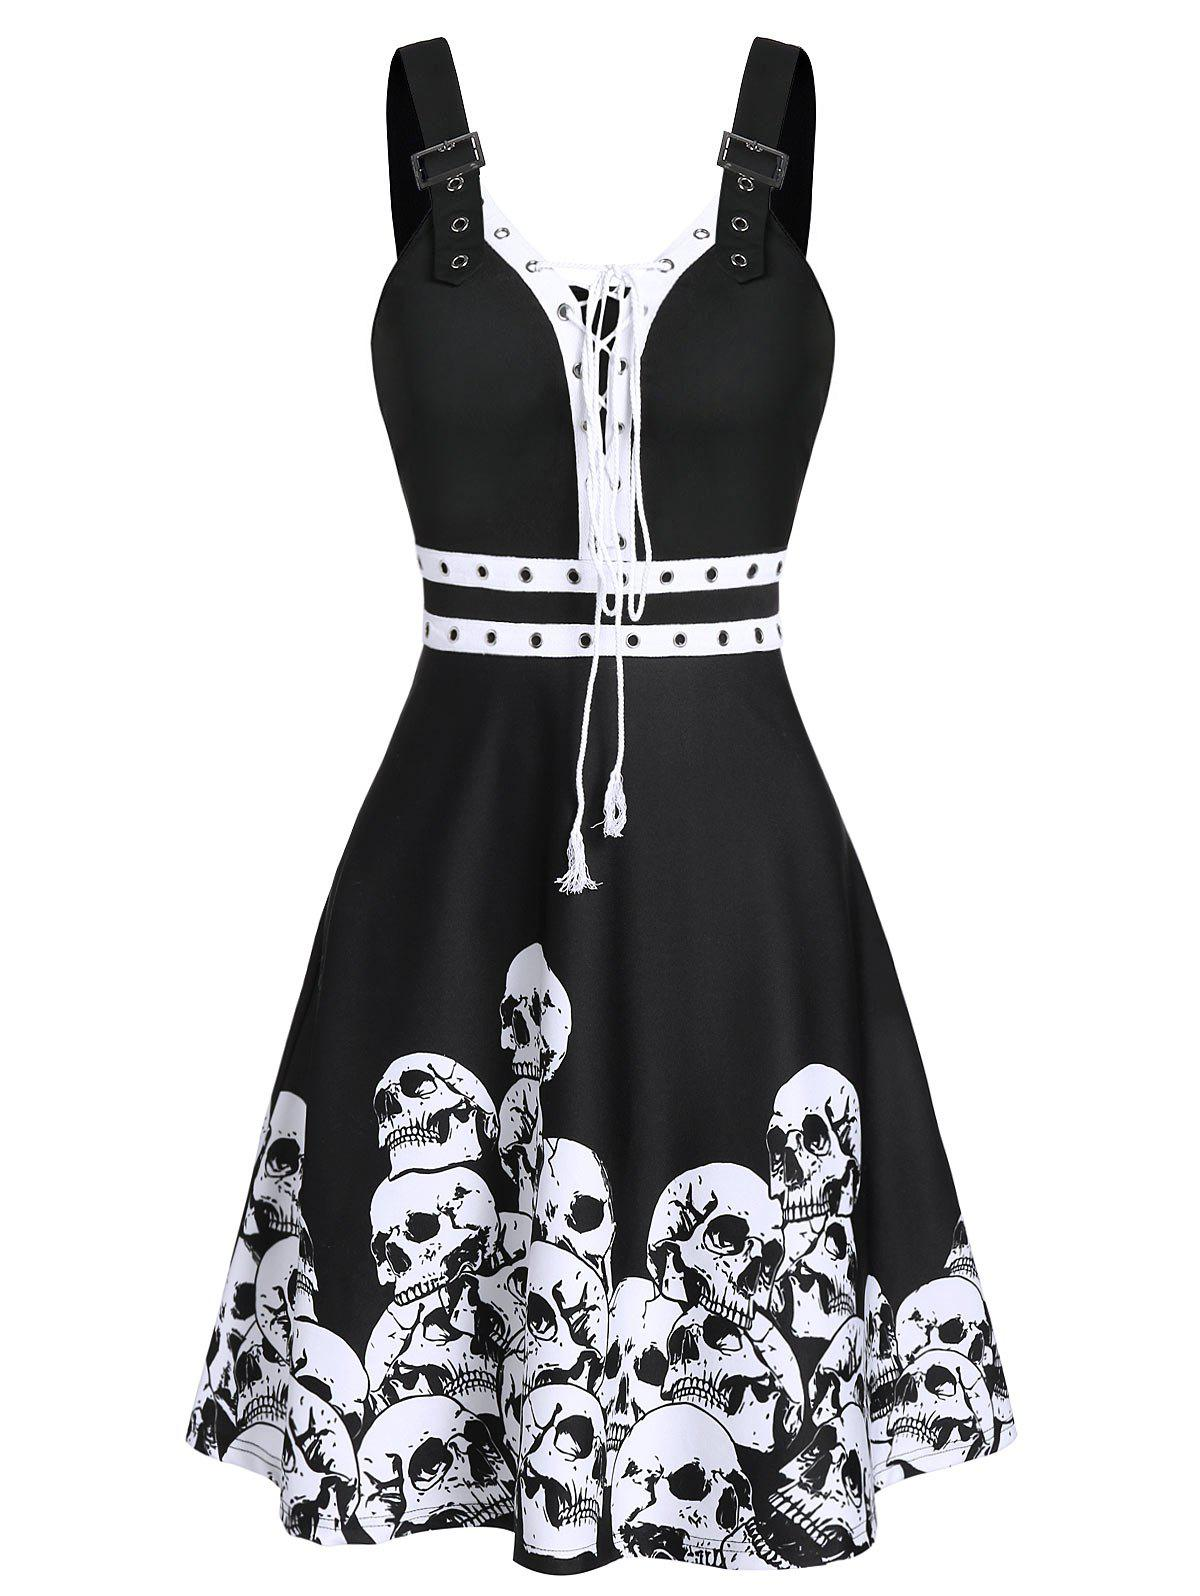 Chic Halloween Skull Print Buckle Strap Lace-up Skater Dress